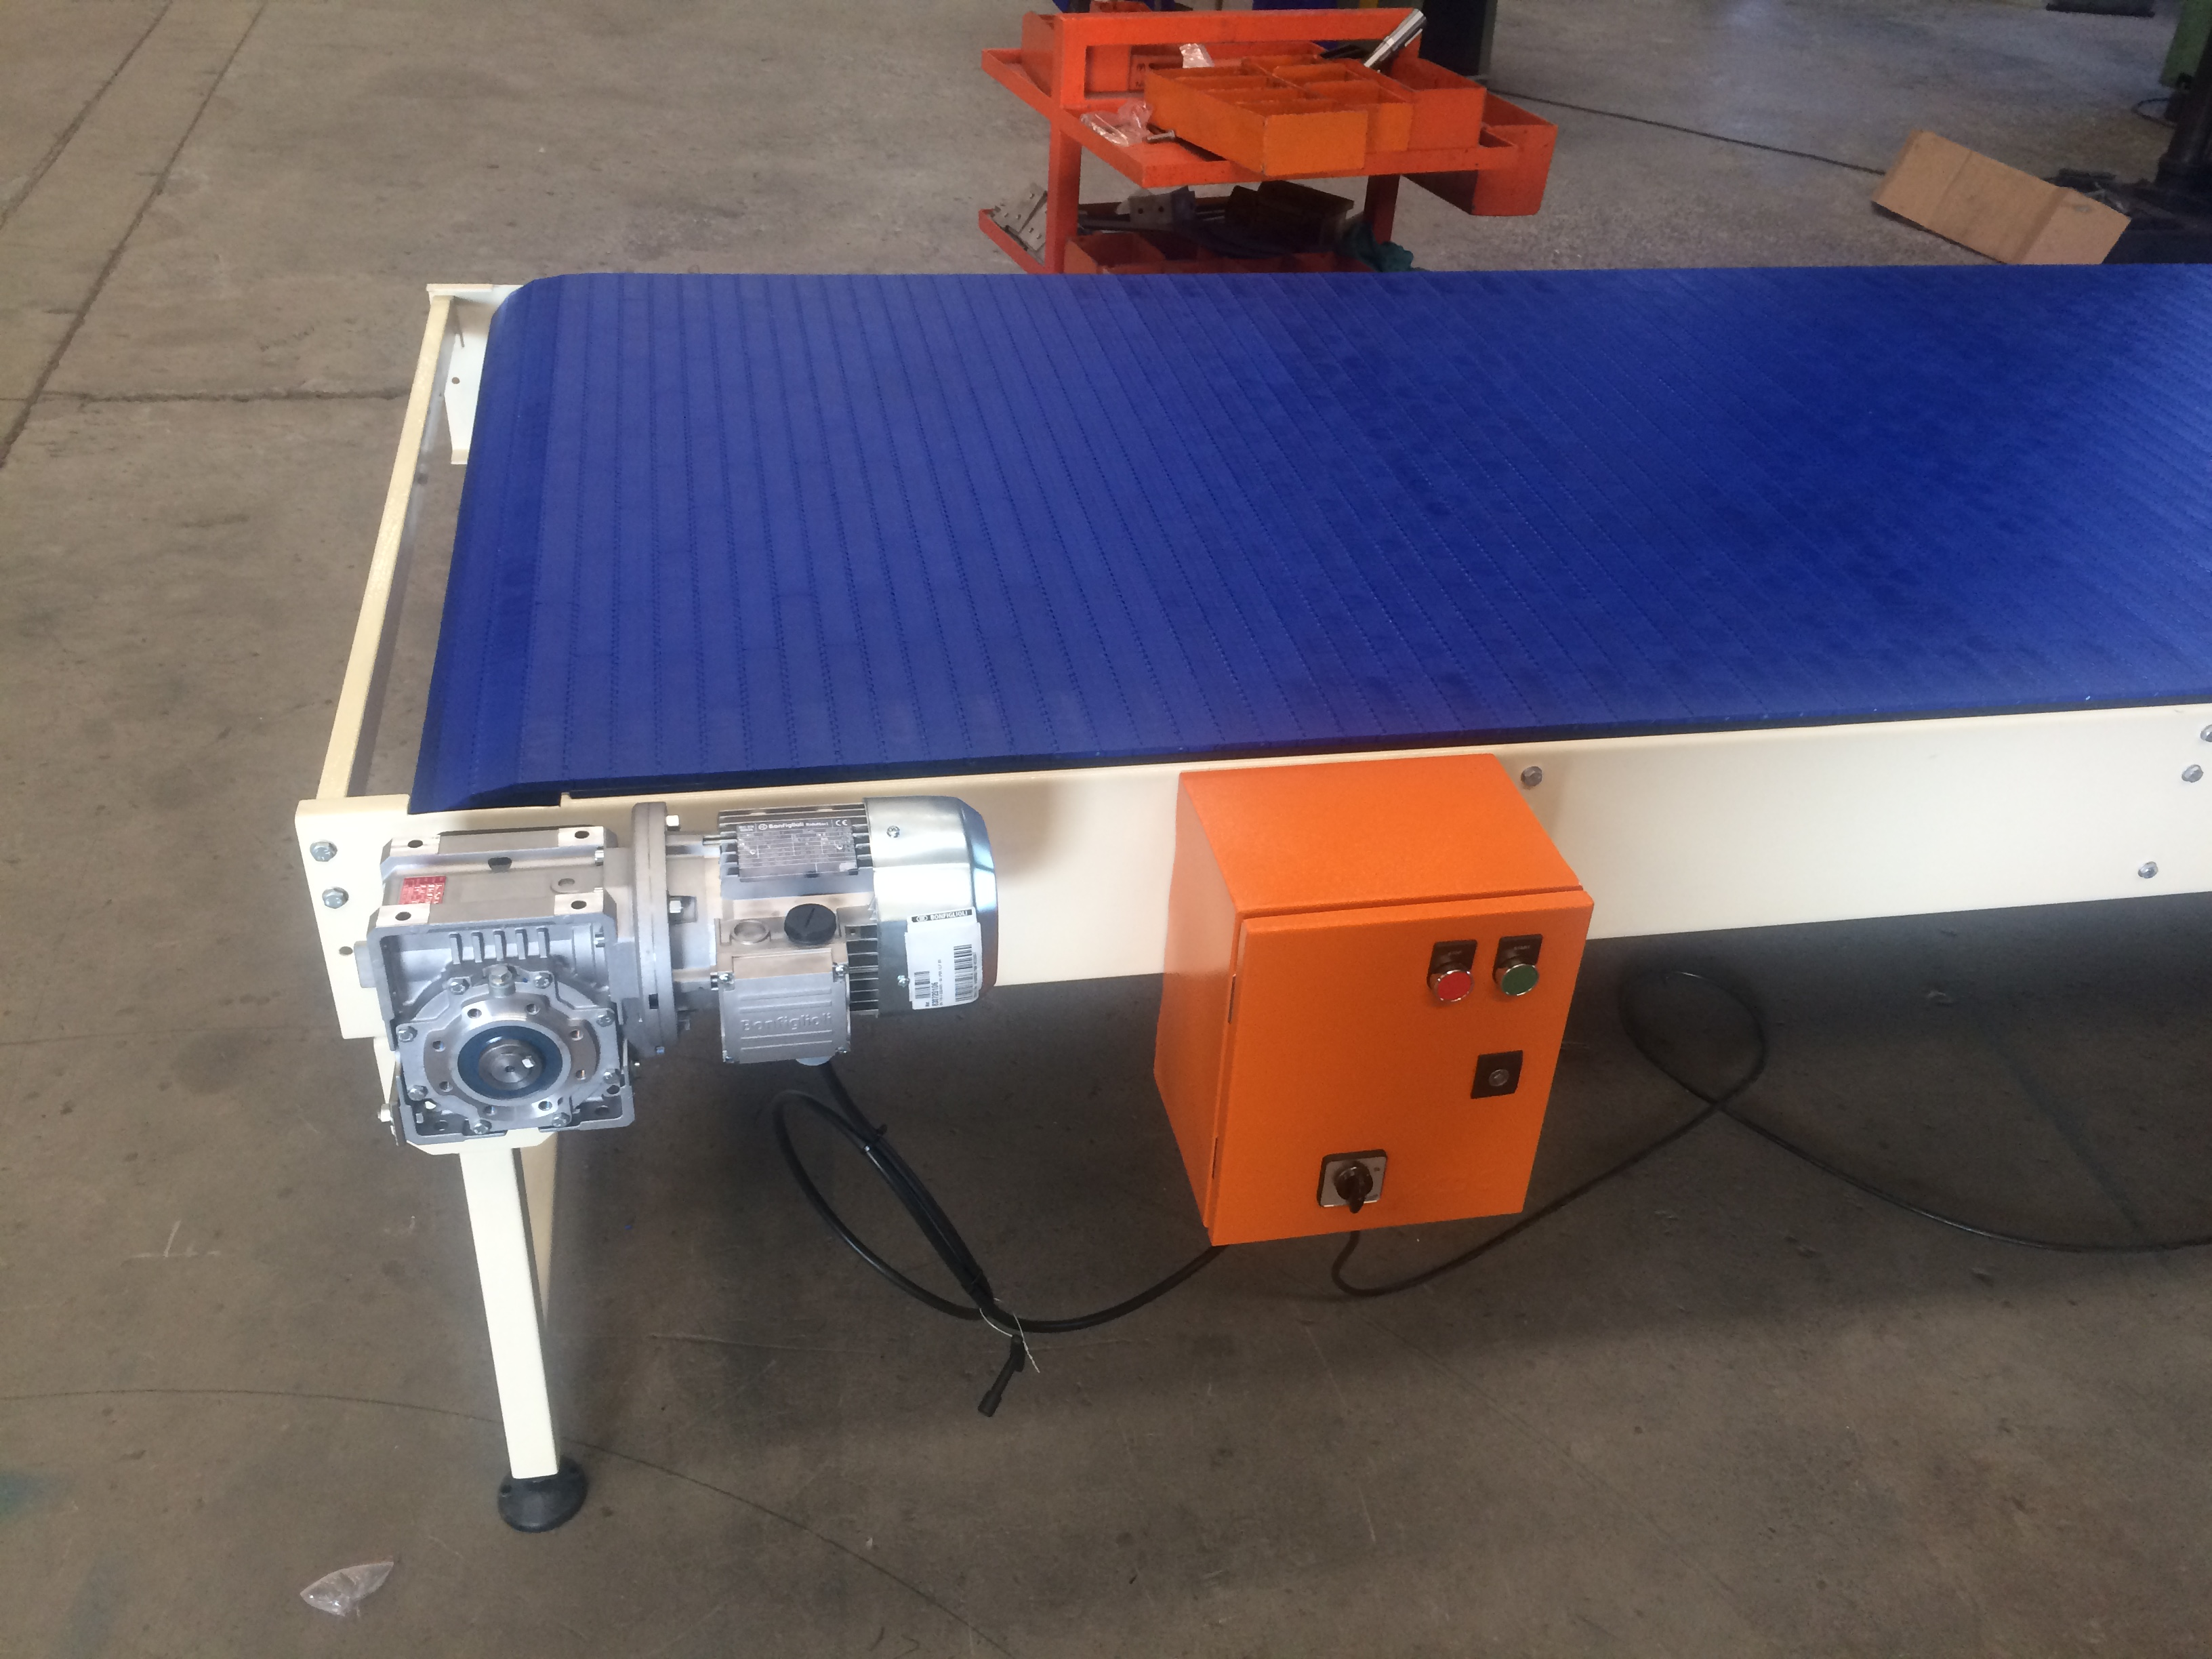 New gallery of our conveyor systems in South Africa